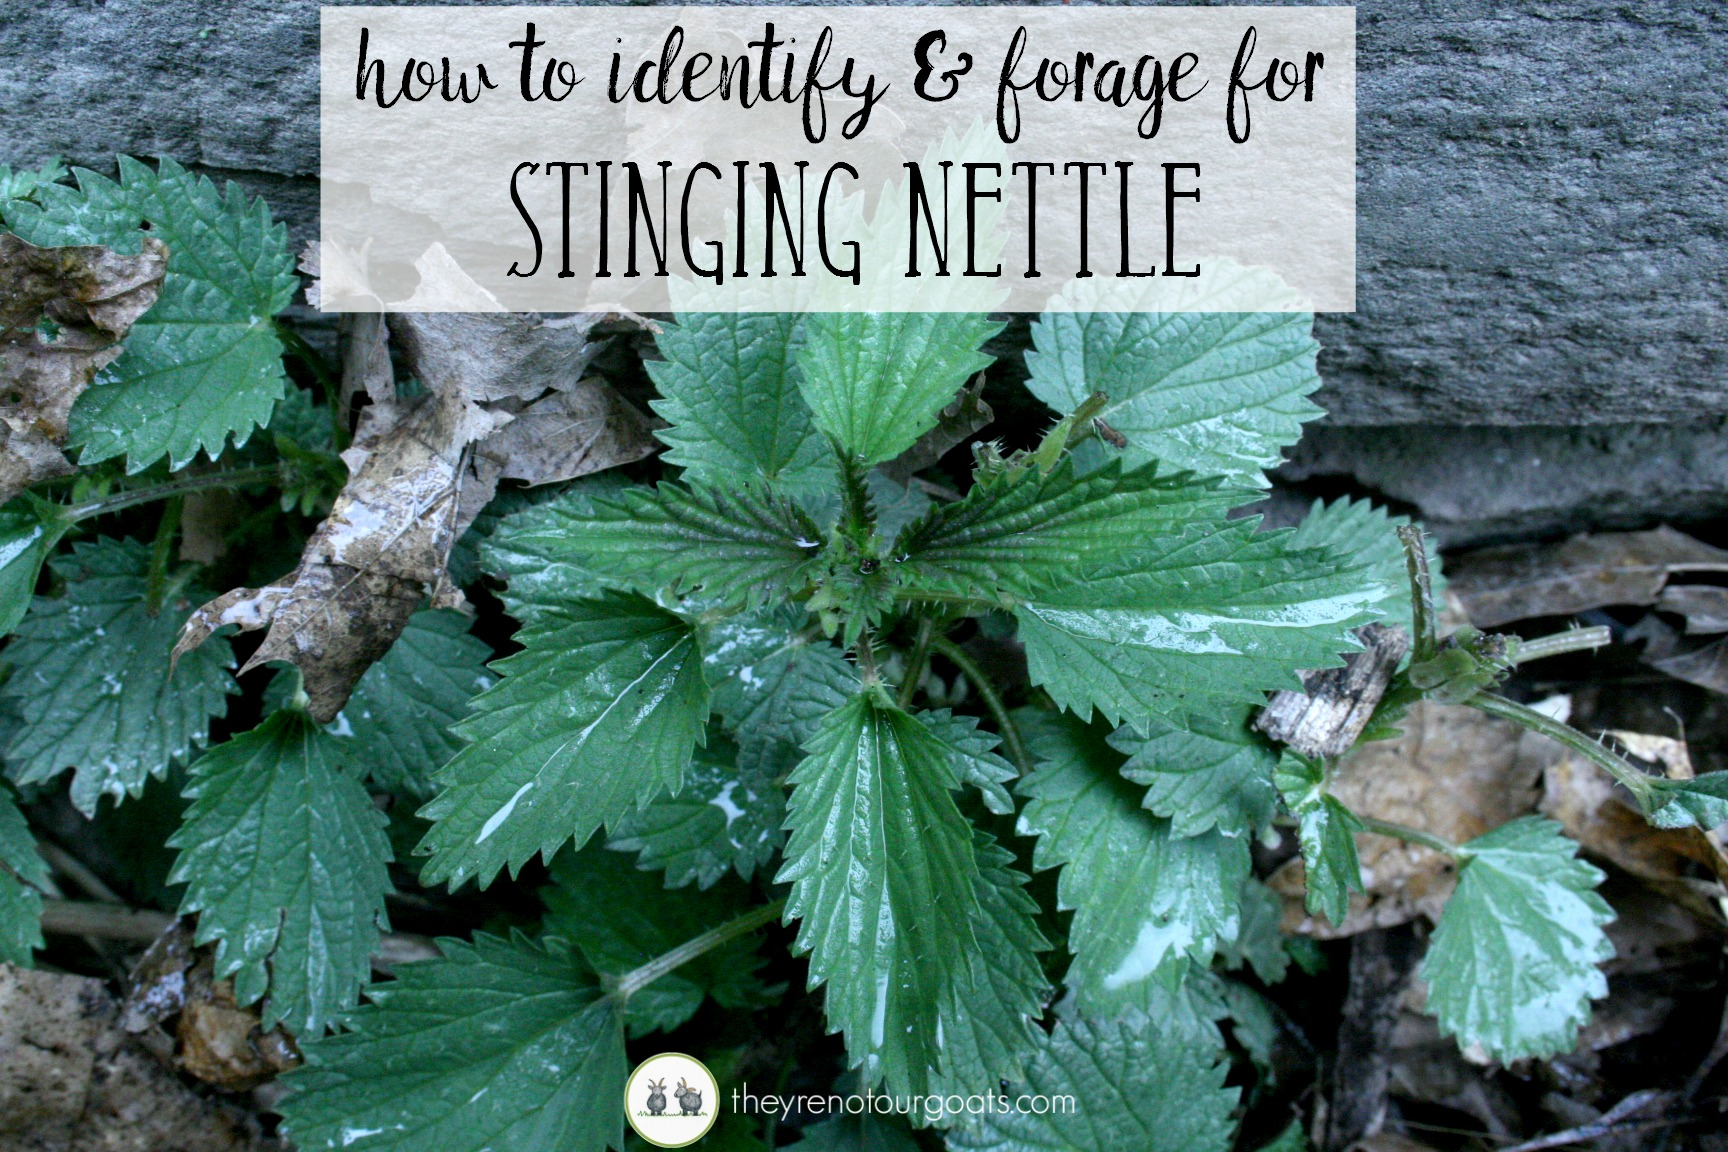 Find out how to forage for stinging nettle!